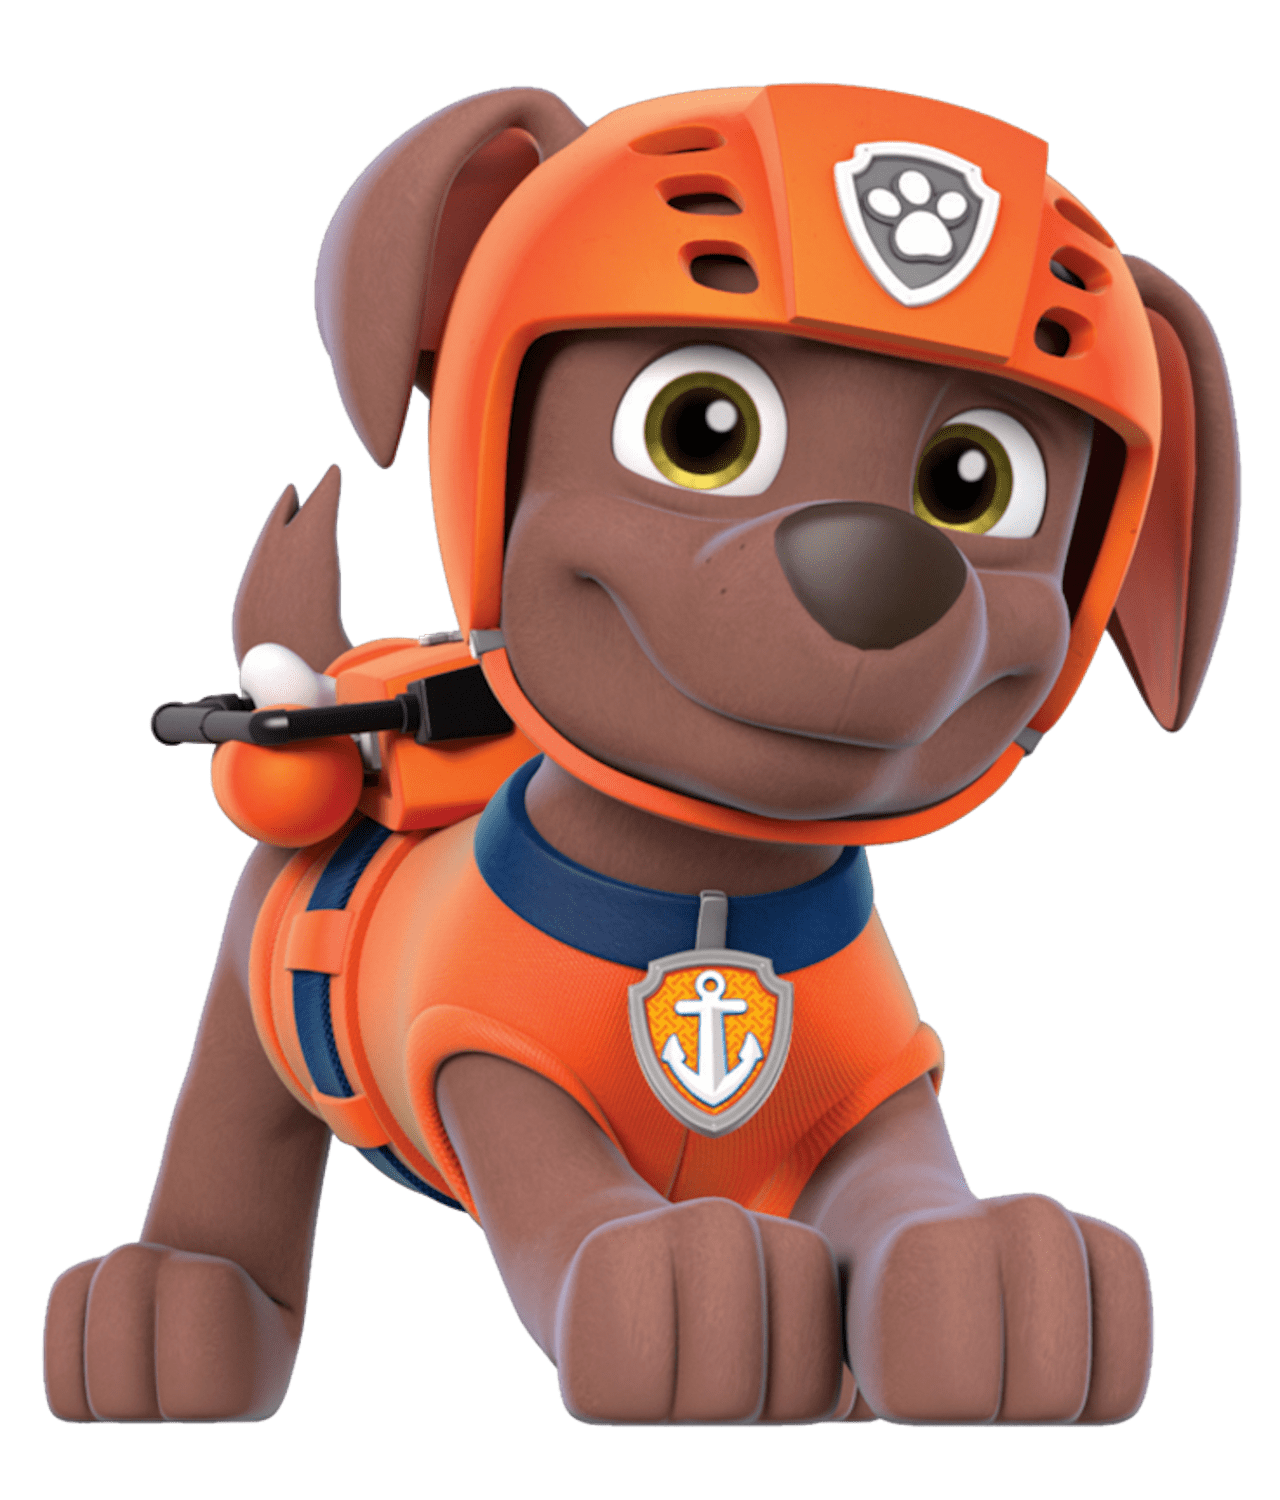 Paw patrol png clipart. Zuma